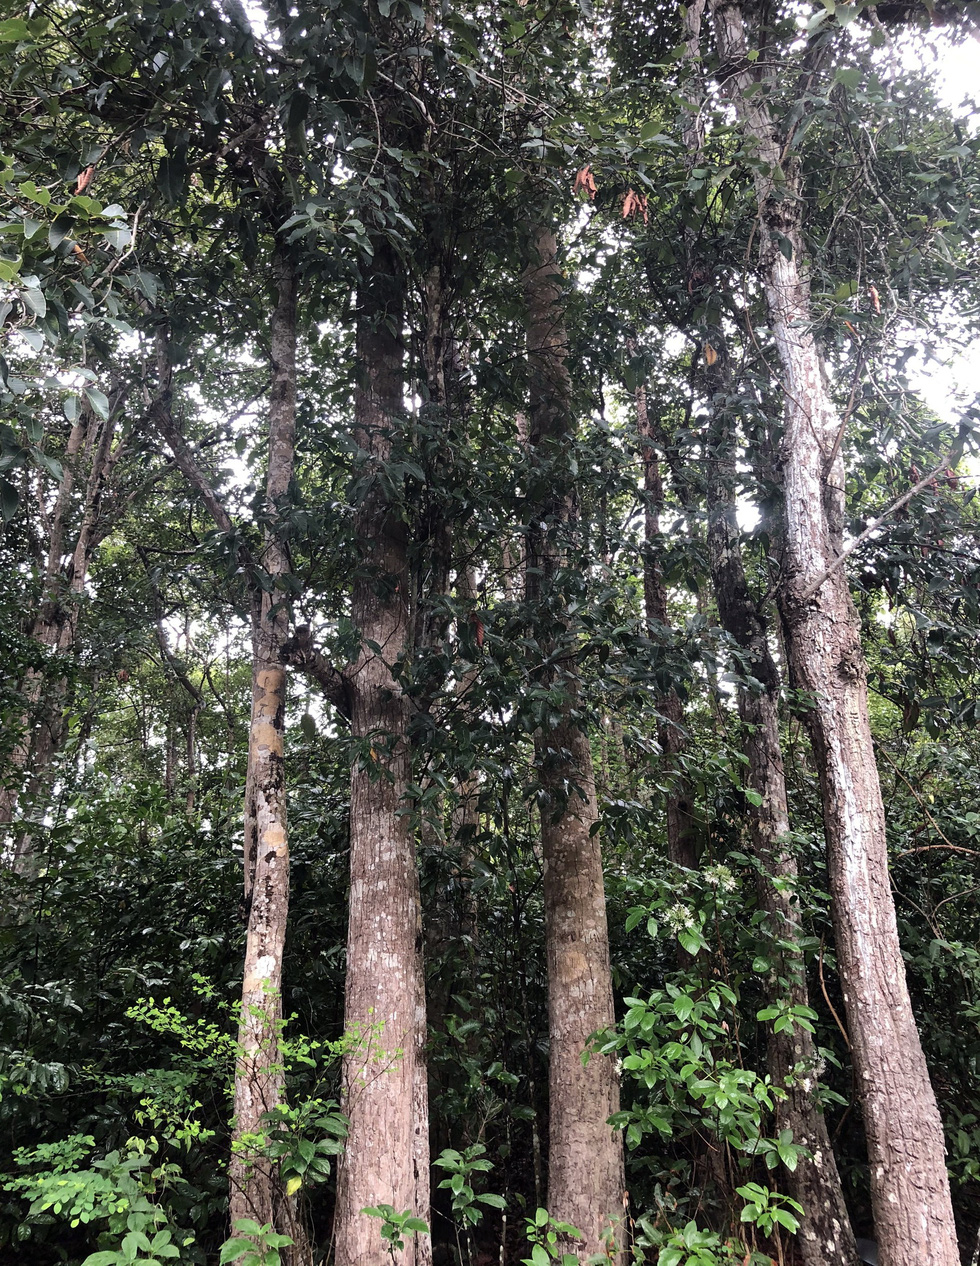 The resin trees in a forest on Con Dao Island off Ba Ria-Vung Tau Province in southern Vietnam are eight centimeters to 30 centimeters in diameter. Photo: Dong Ha / Tuoi Tre